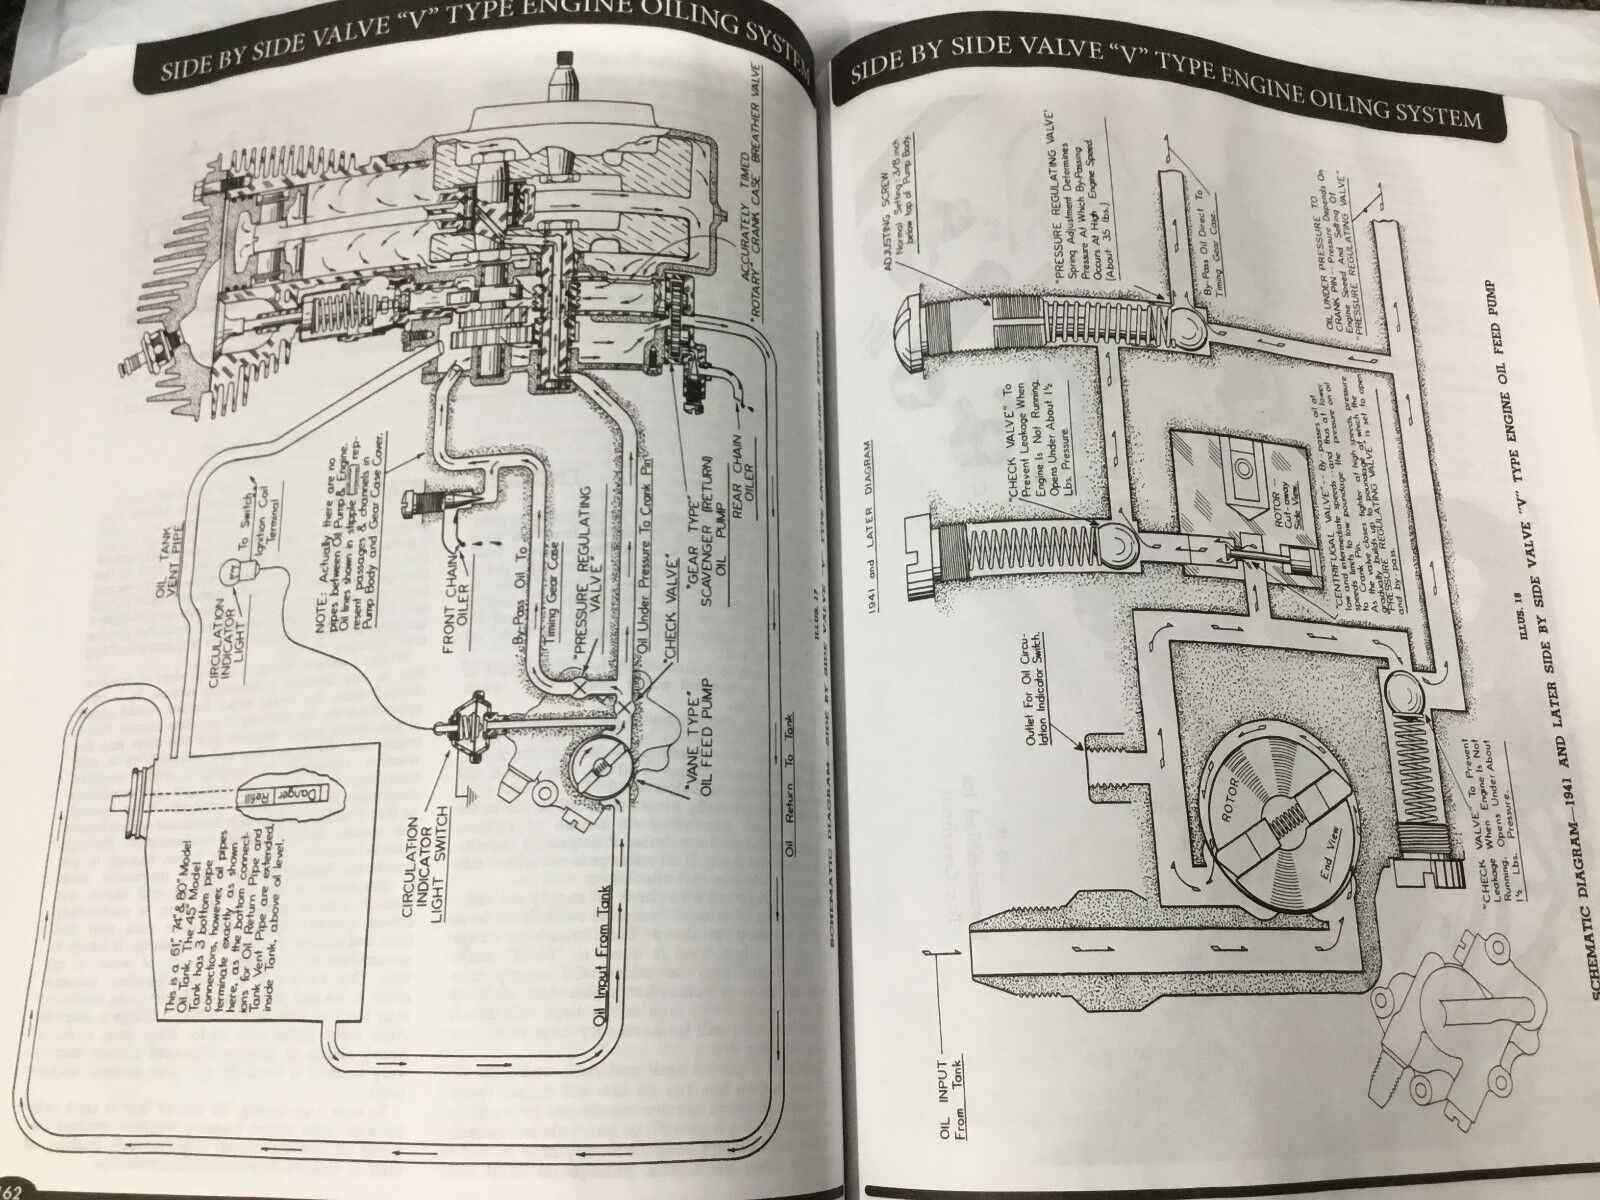 Harley Wl Wr Servicar Service Parts Tuning Manual 1937 Up Engine Oiling System Diagram 1937up